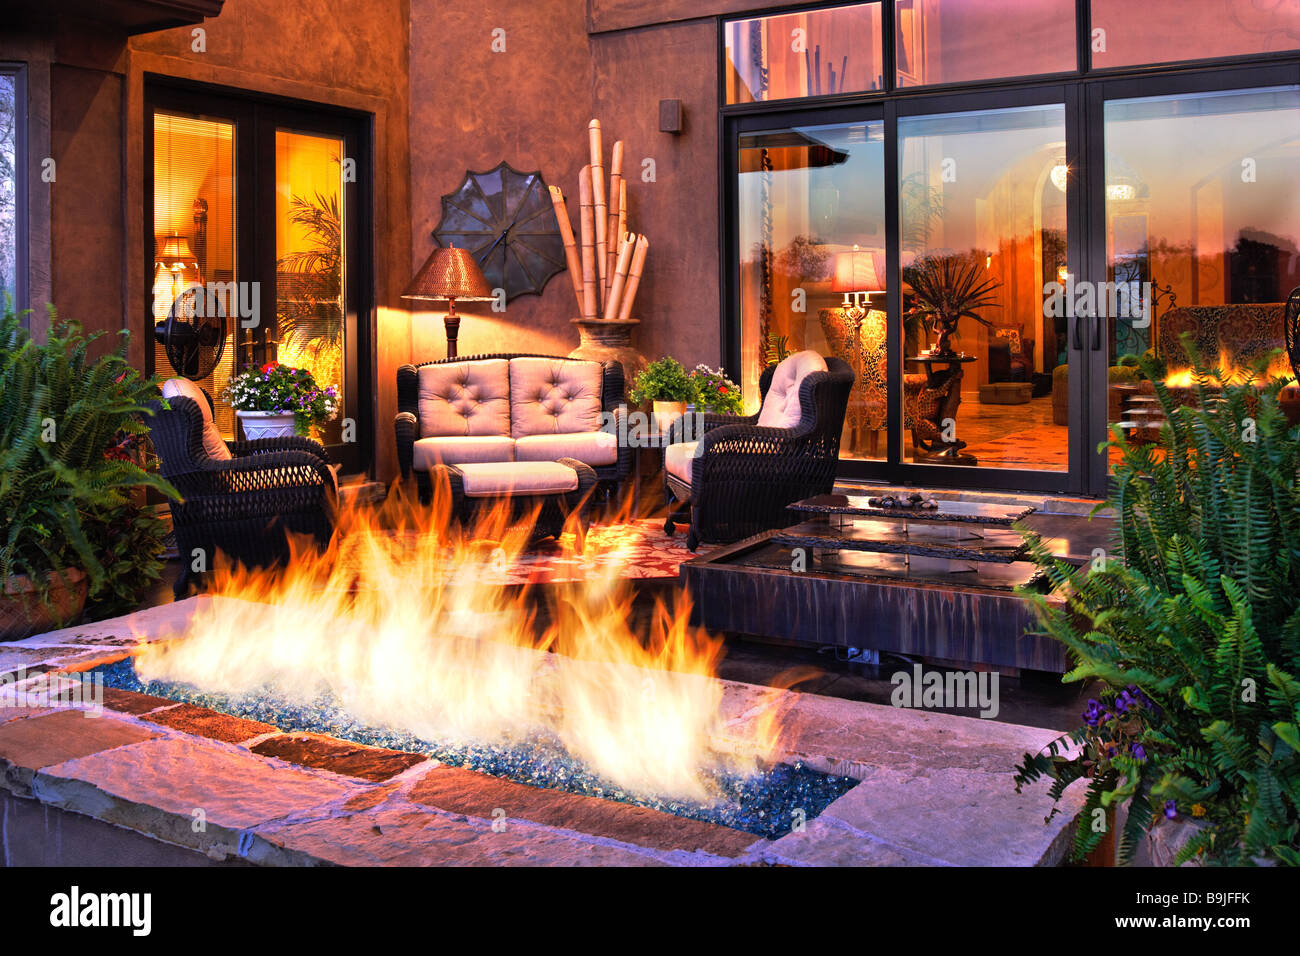 Delicieux Gas Fireplace On Outdoor Patio. Flames Emerging From Rocks.